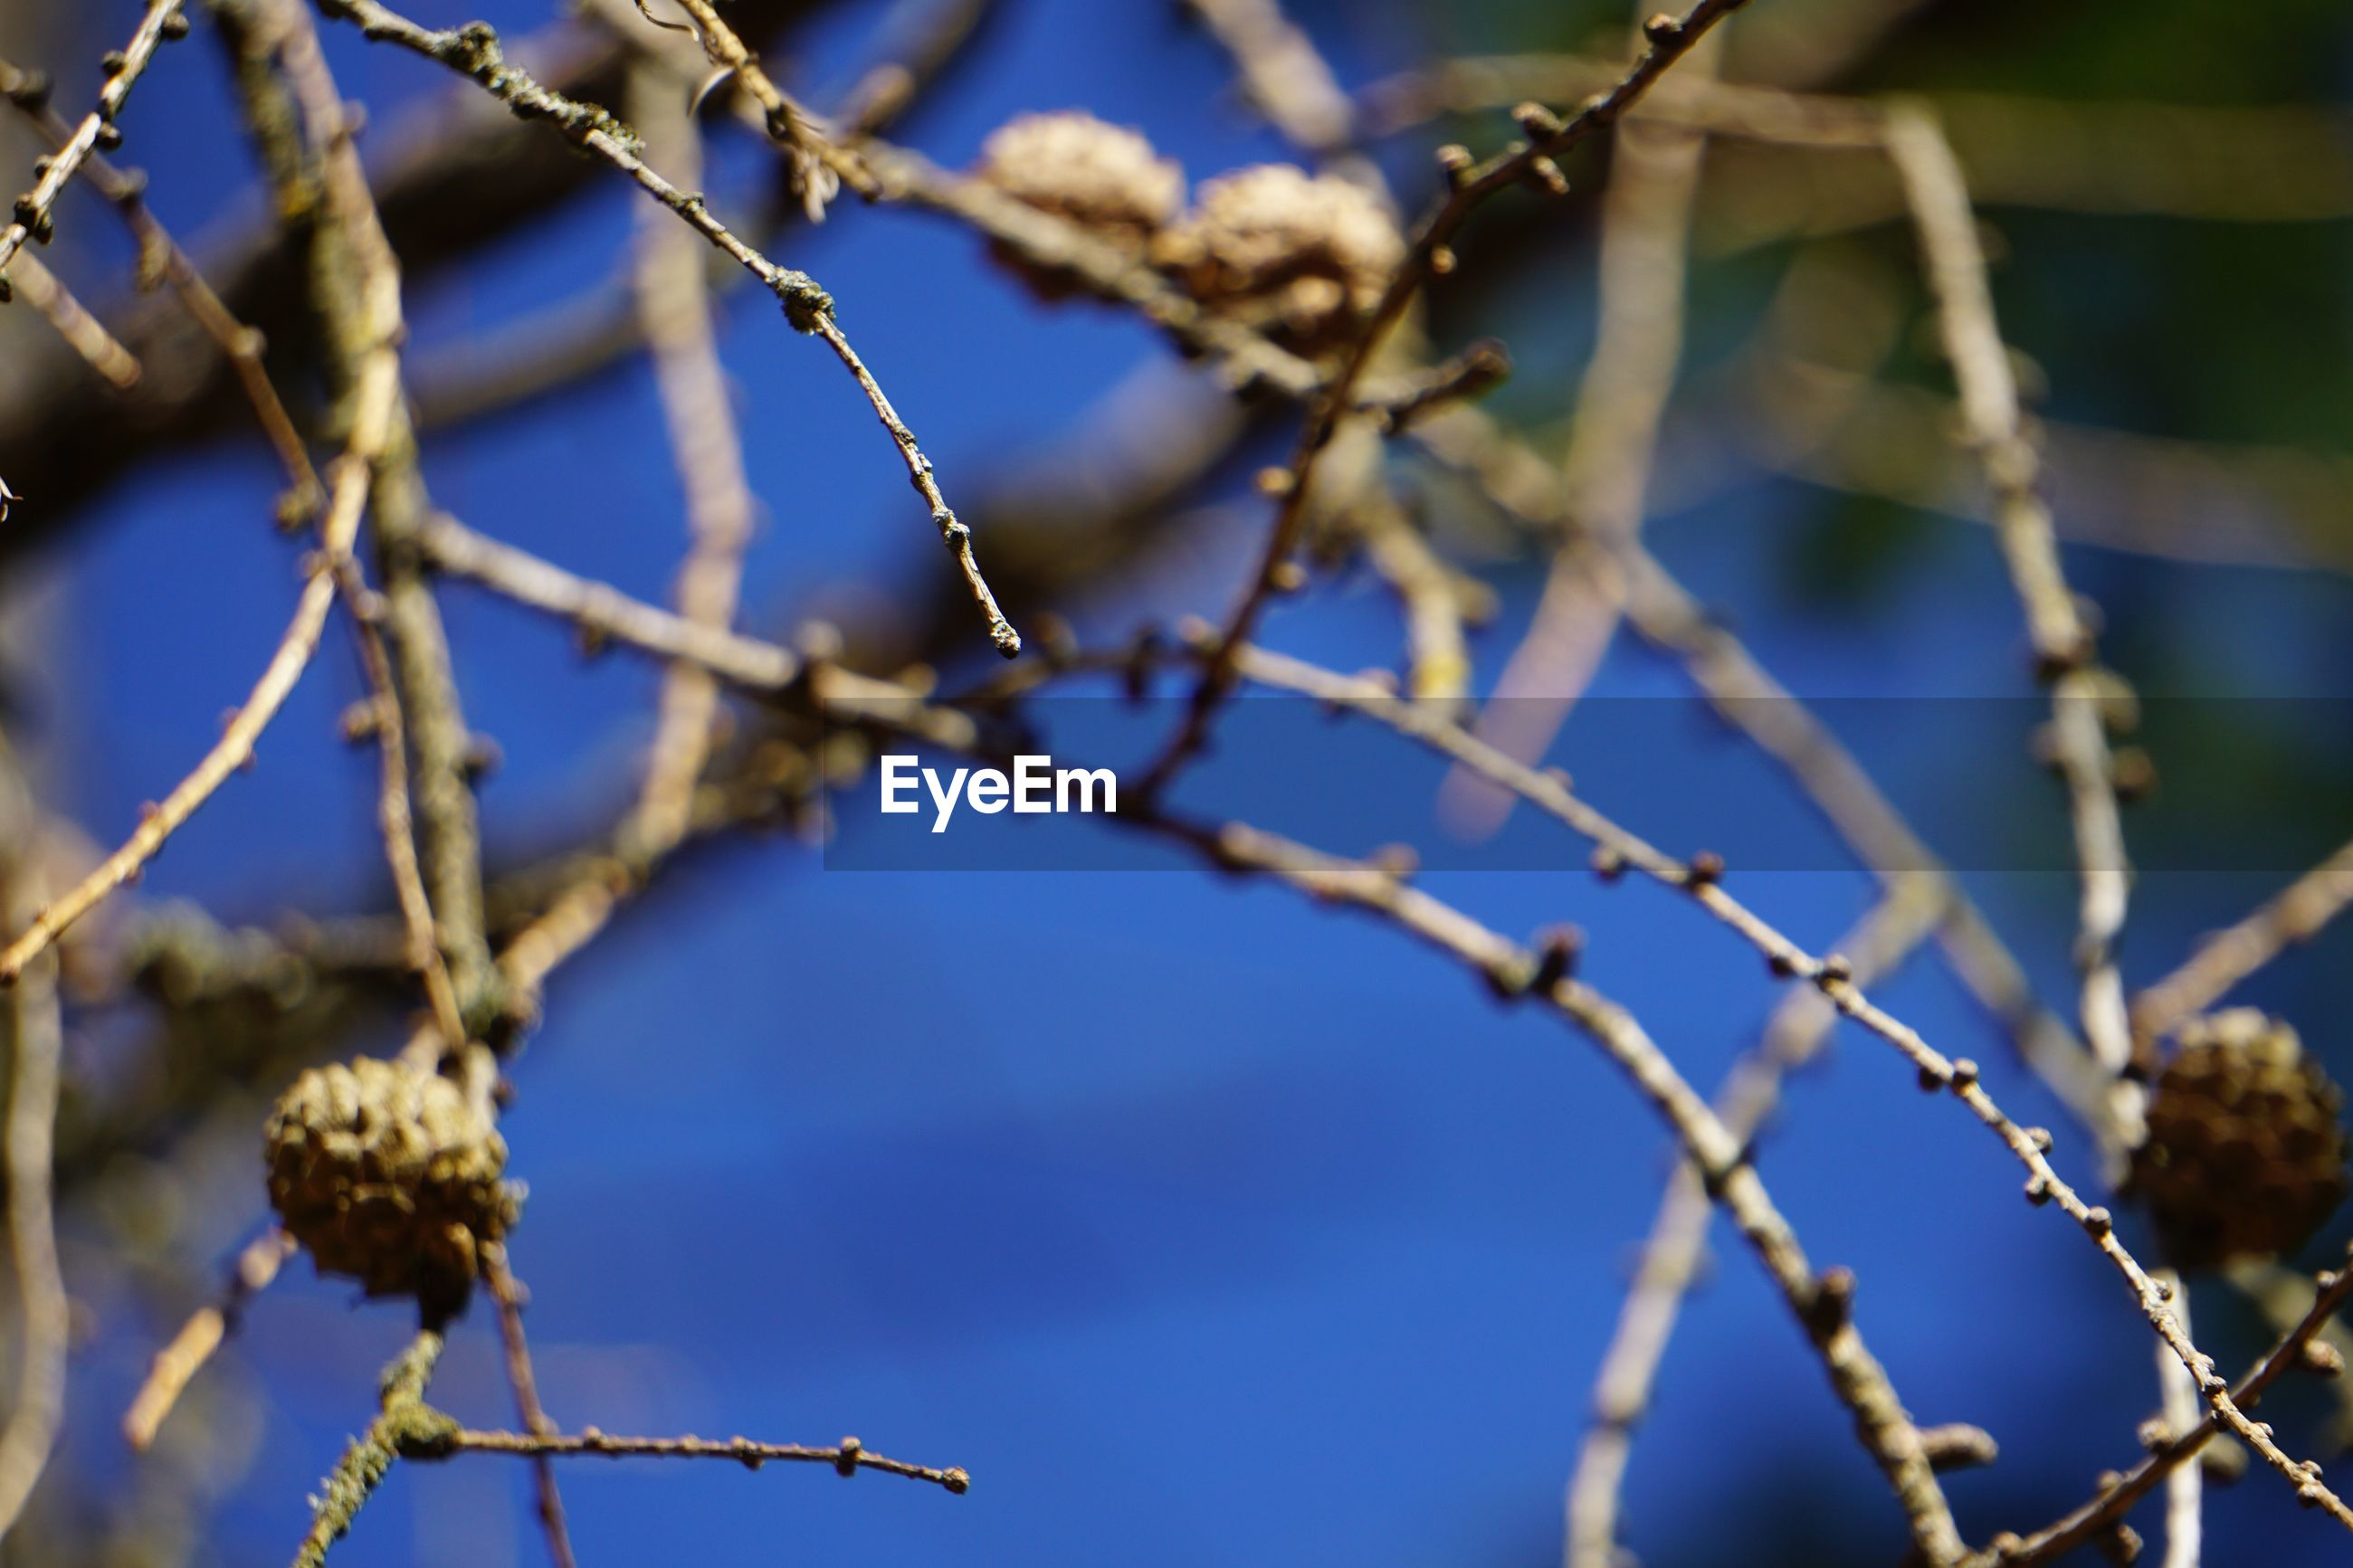 LOW ANGLE VIEW OF FLOWERING PLANT ON BRANCH AGAINST BLUE SKY